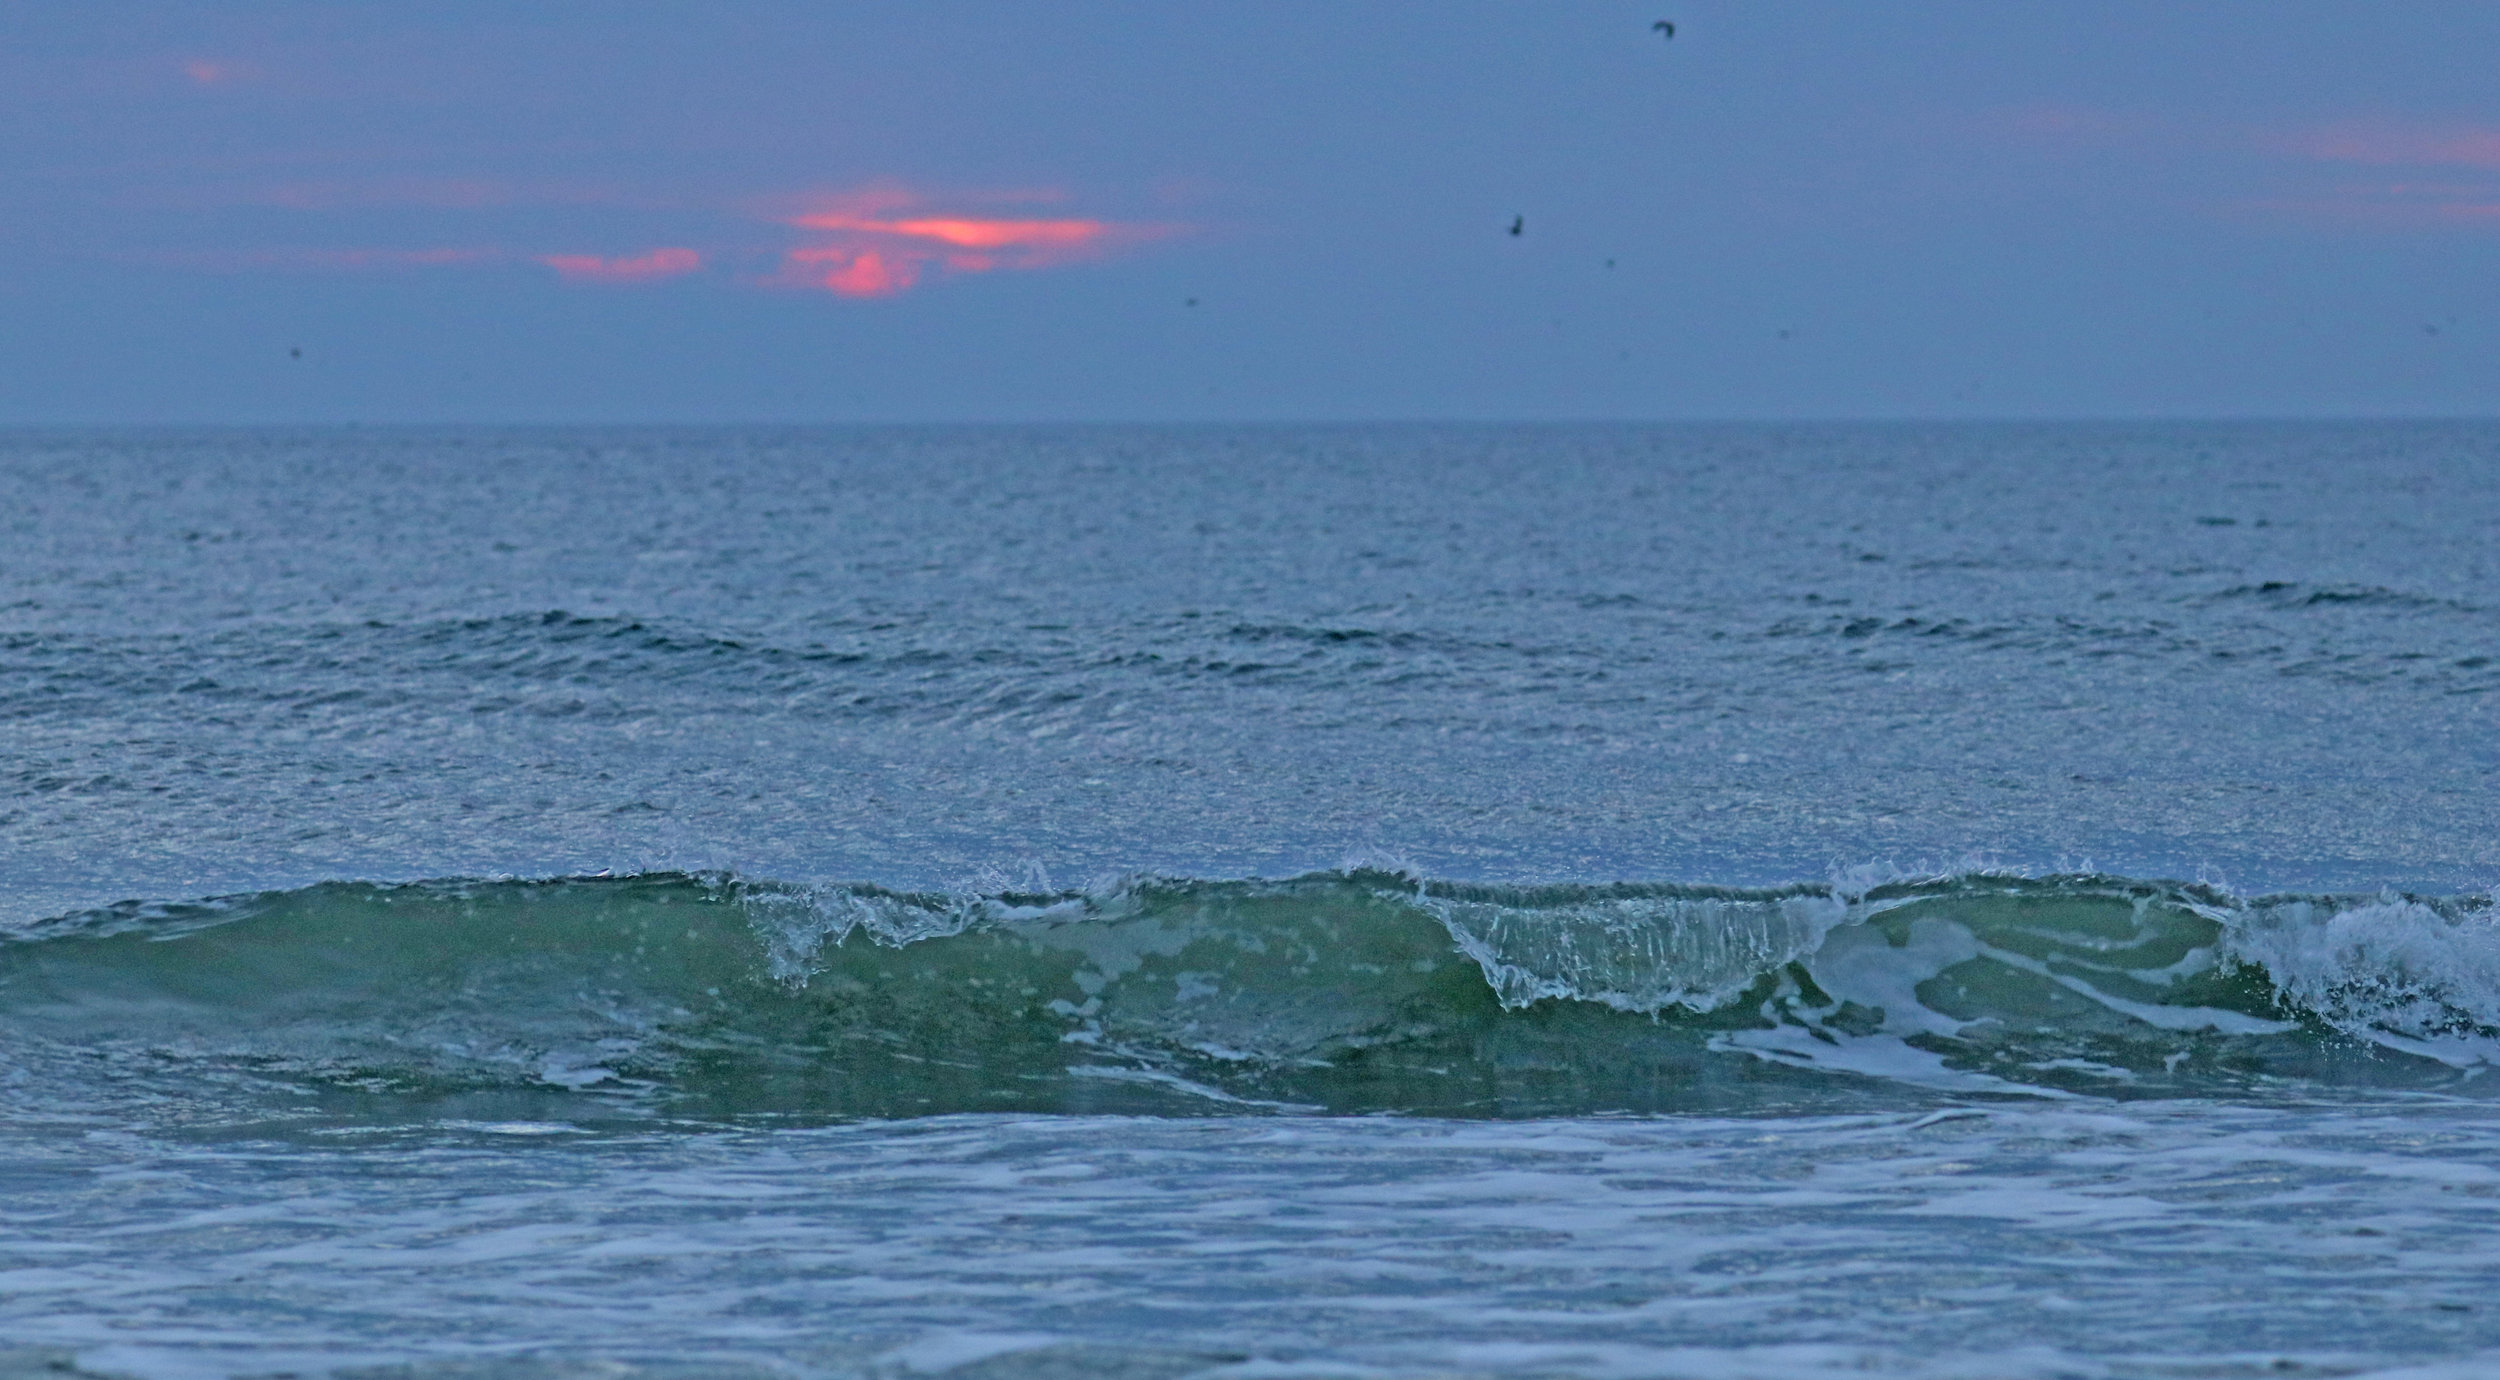 There is a dolphin in the center of the wave.  I was really wishing the sun was up for this photo.